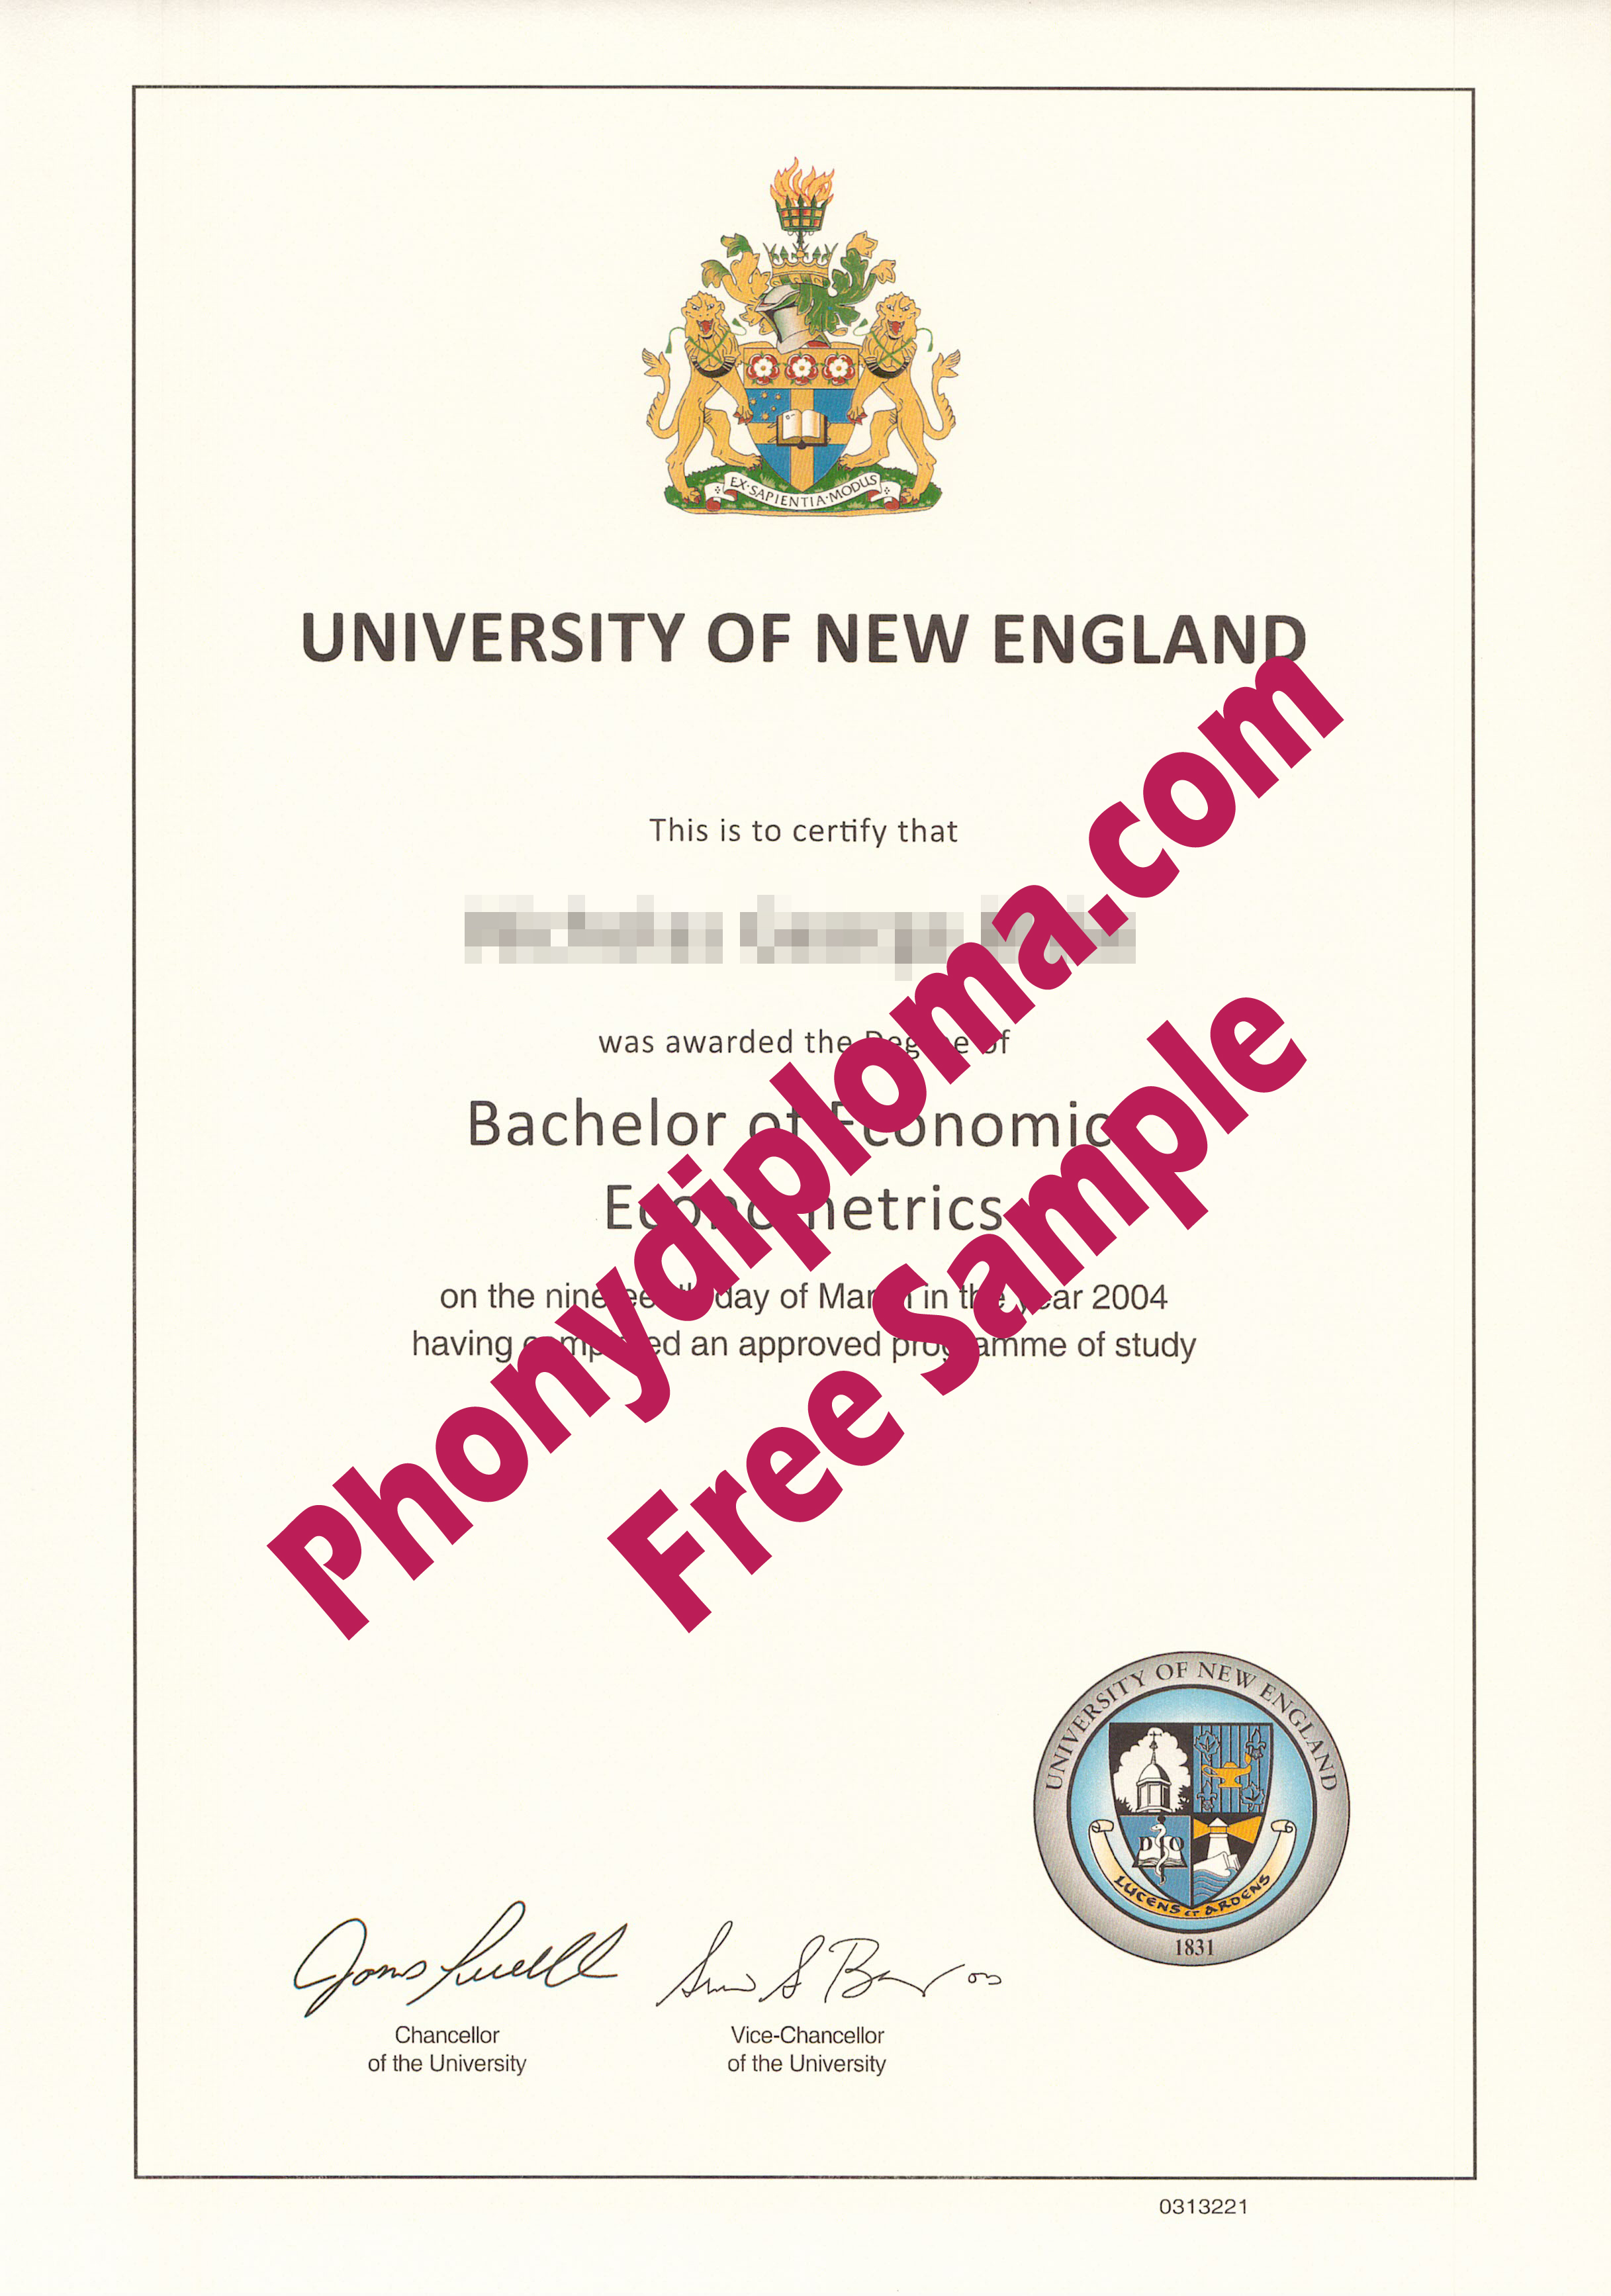 University Of New England Free Sample From Phonydiploma (2)